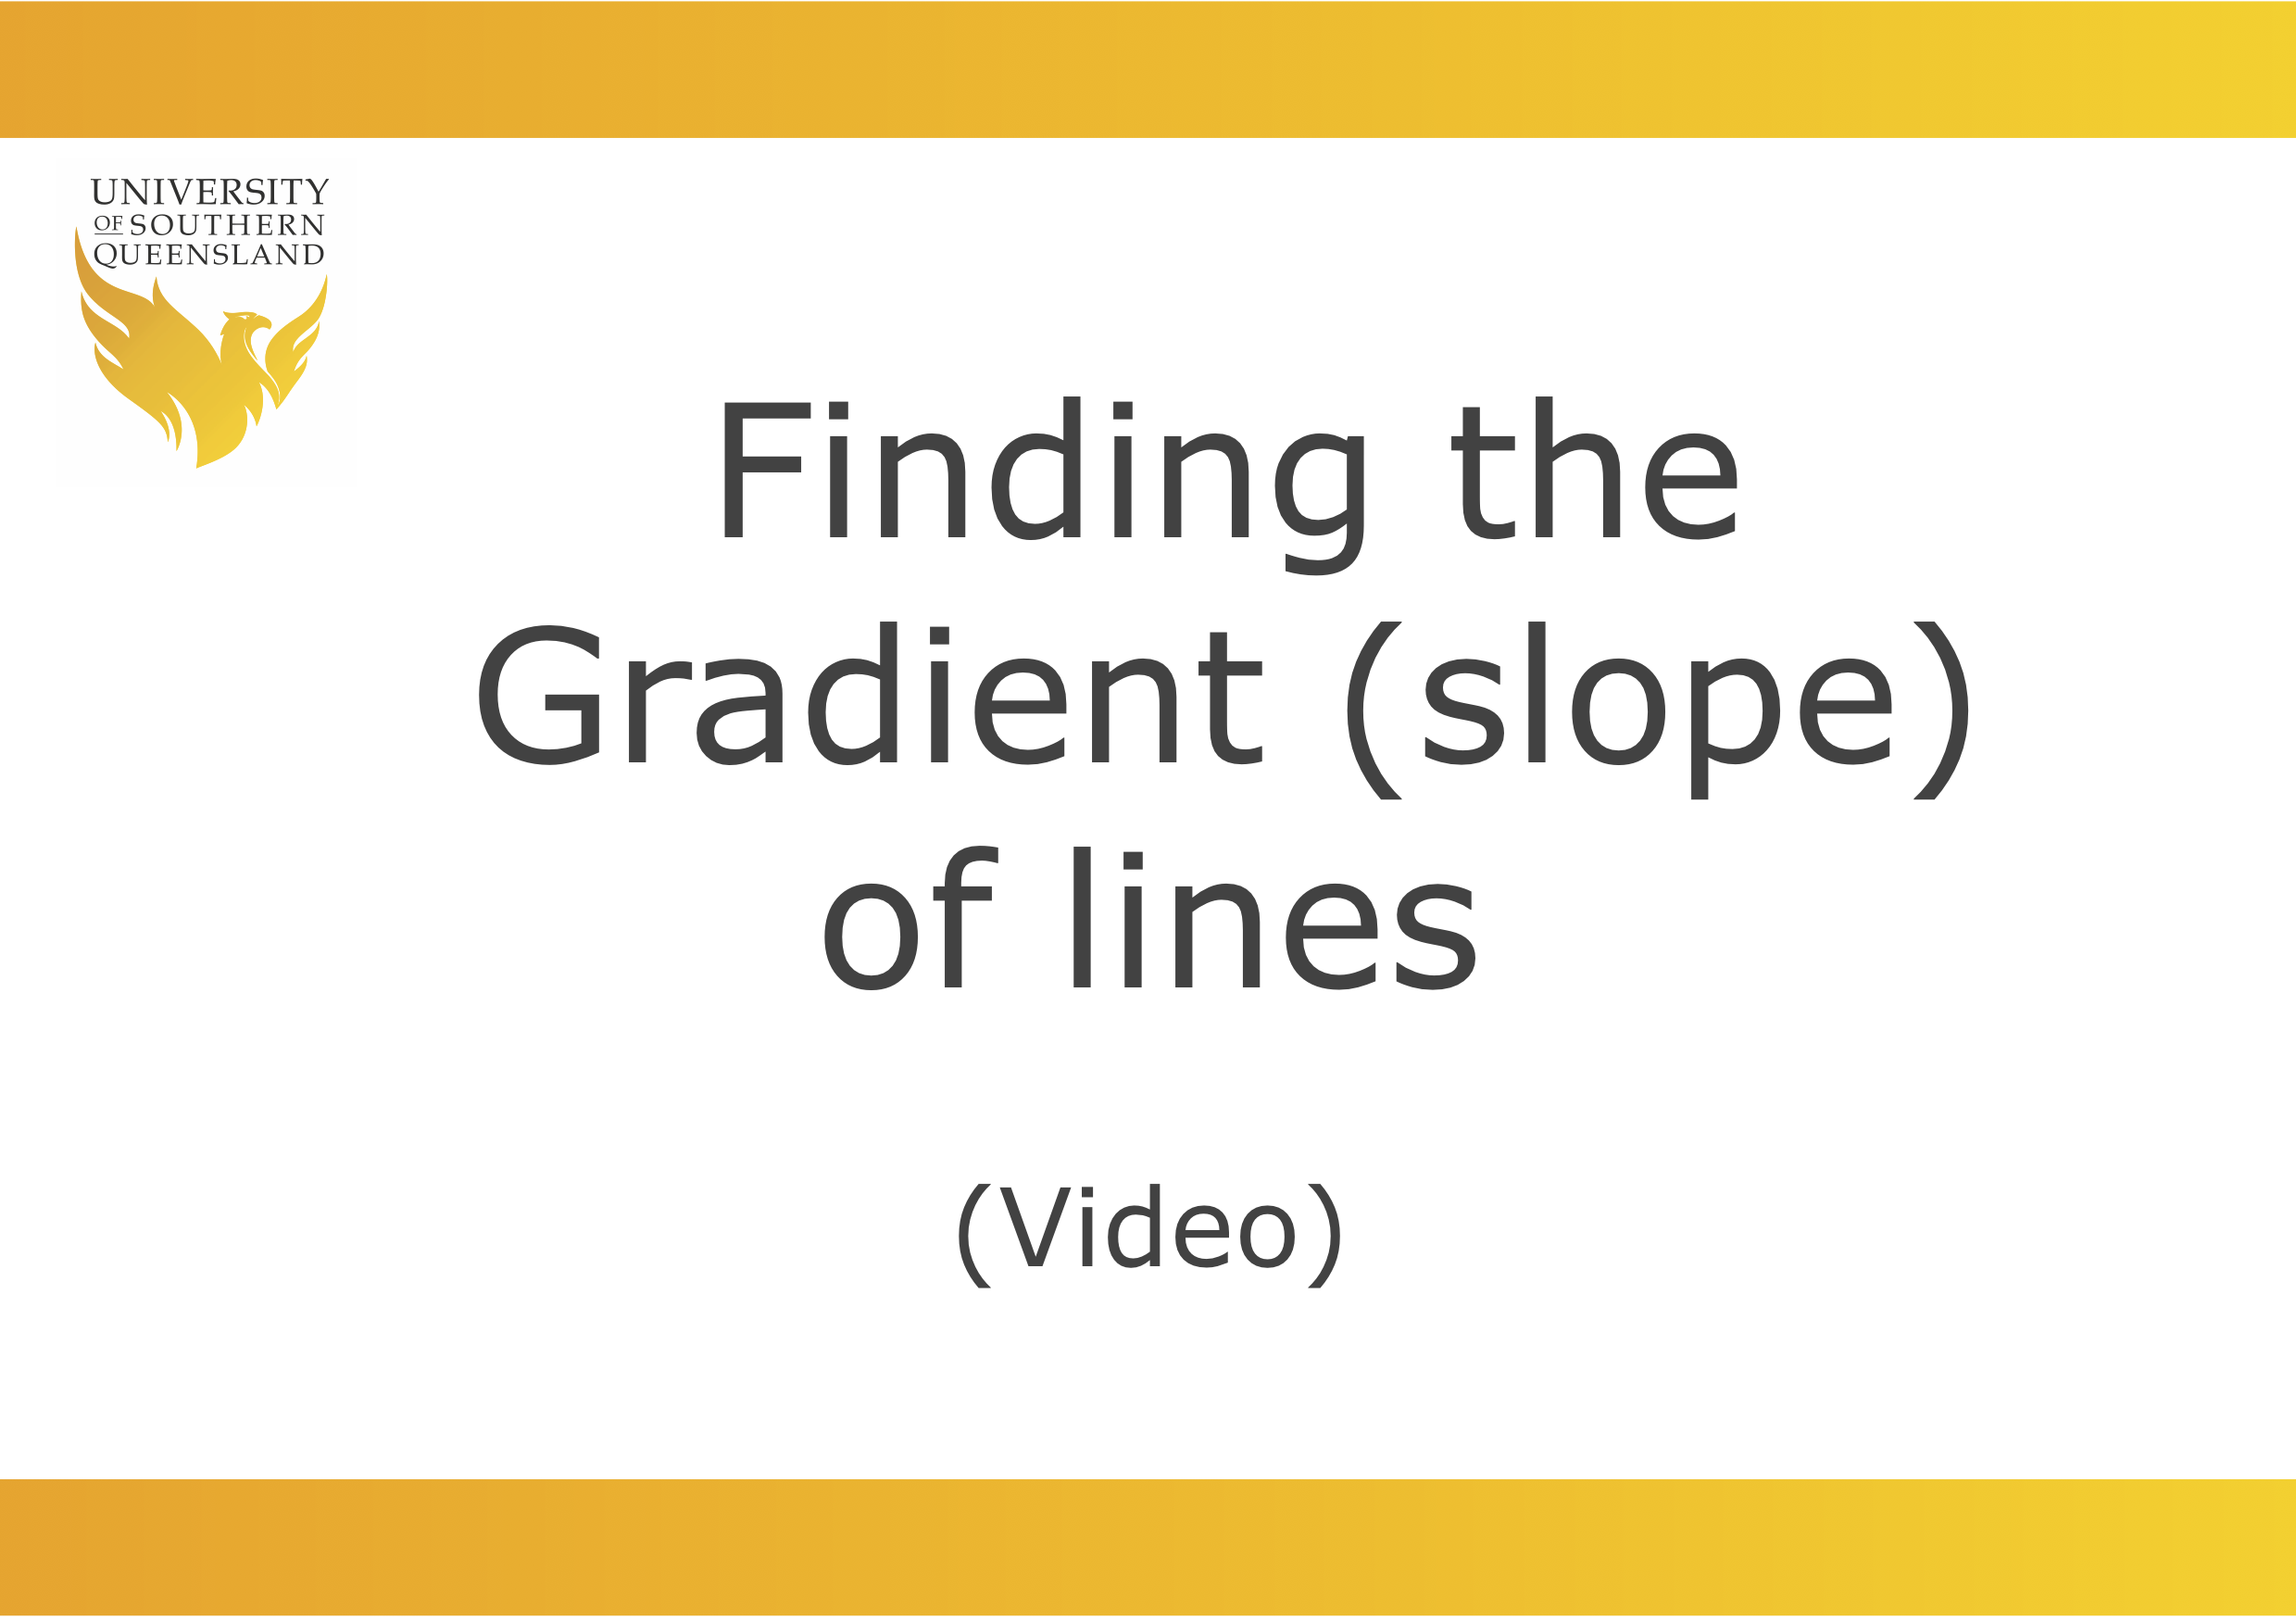 """Image to click on to play the video """"Finding the gradient or slope of lines"""""""